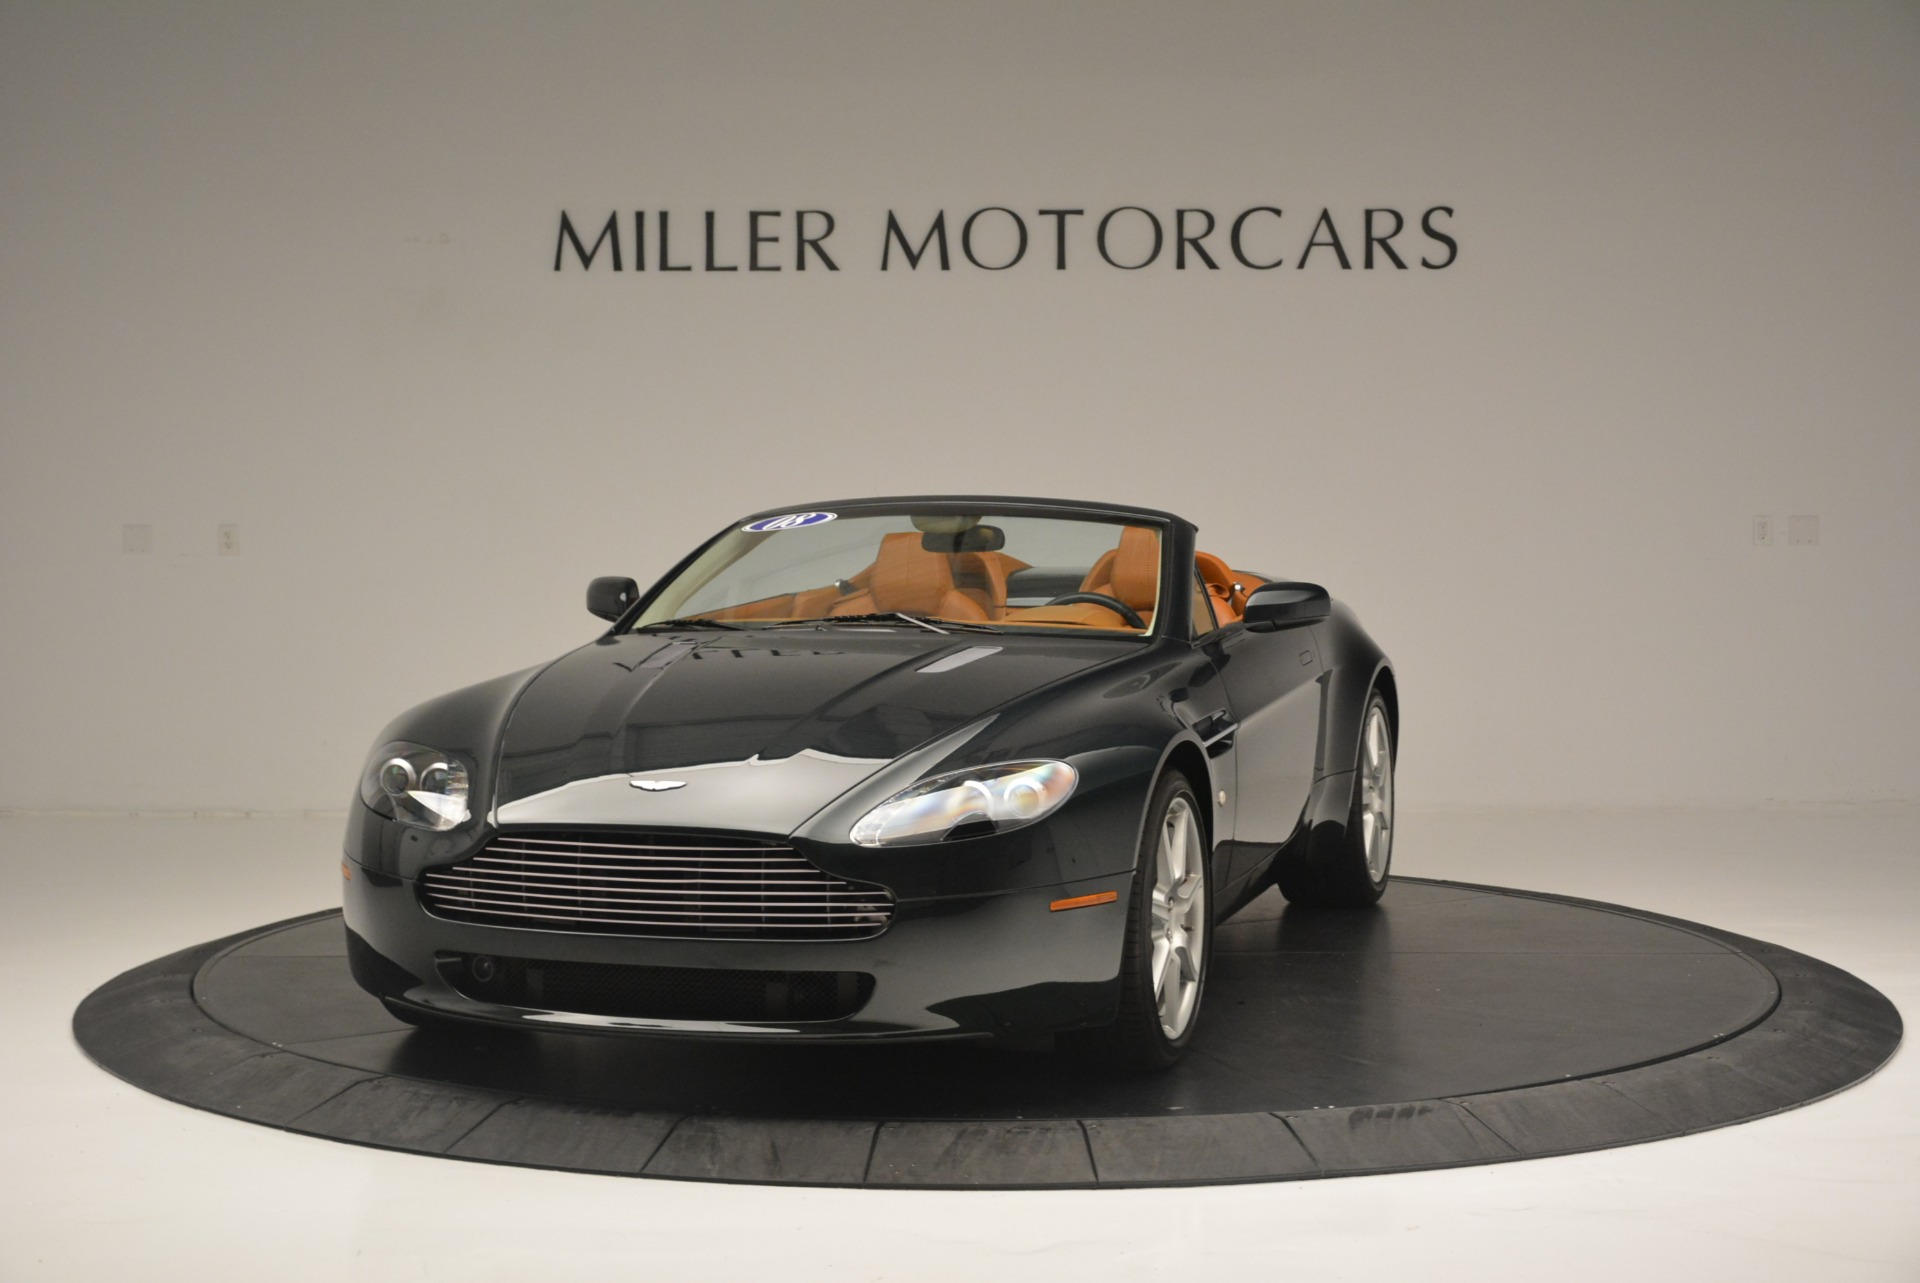 Used 2008 Aston Martin V8 Vantage Roadster for sale Sold at Alfa Romeo of Greenwich in Greenwich CT 06830 1